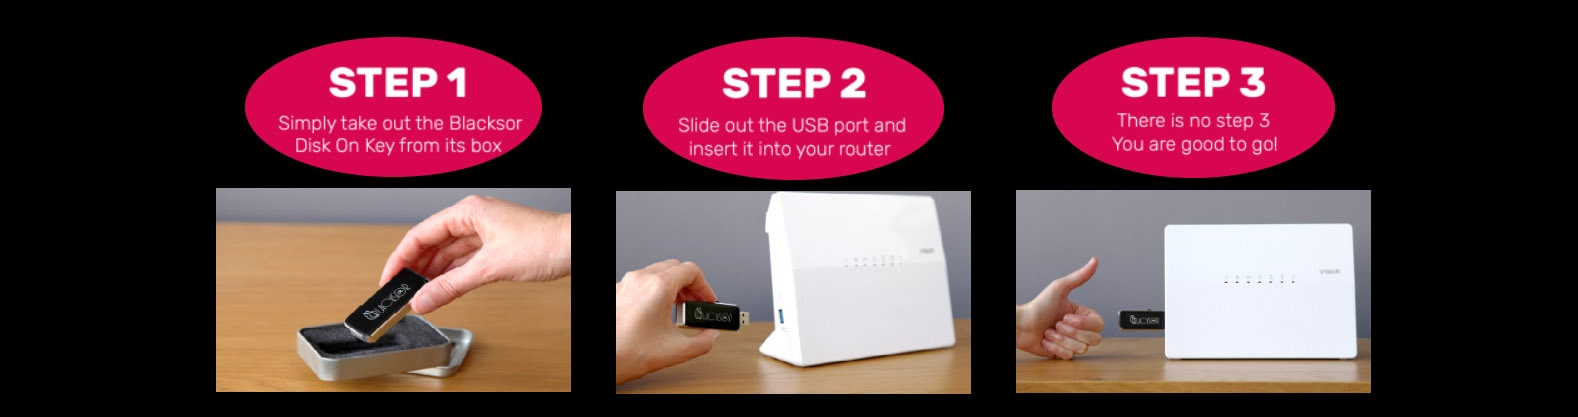 Protect the router with Blacksor